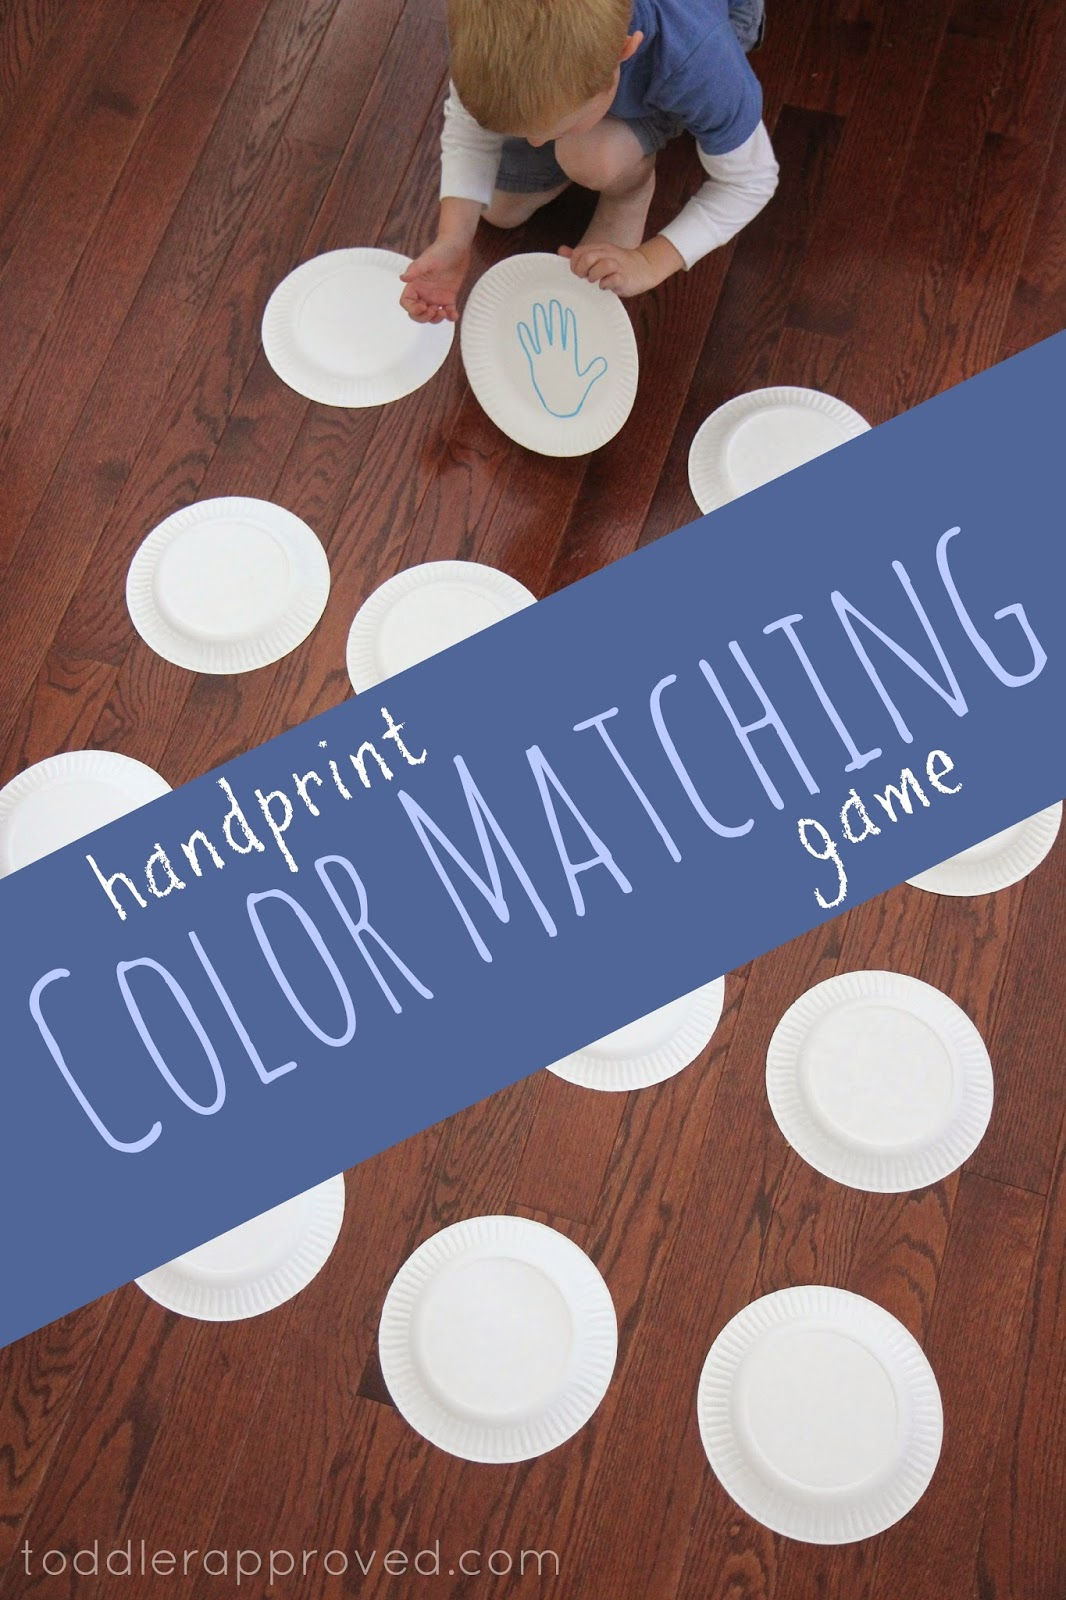 Toddler Approved Handprint Color Matching Game Virtual